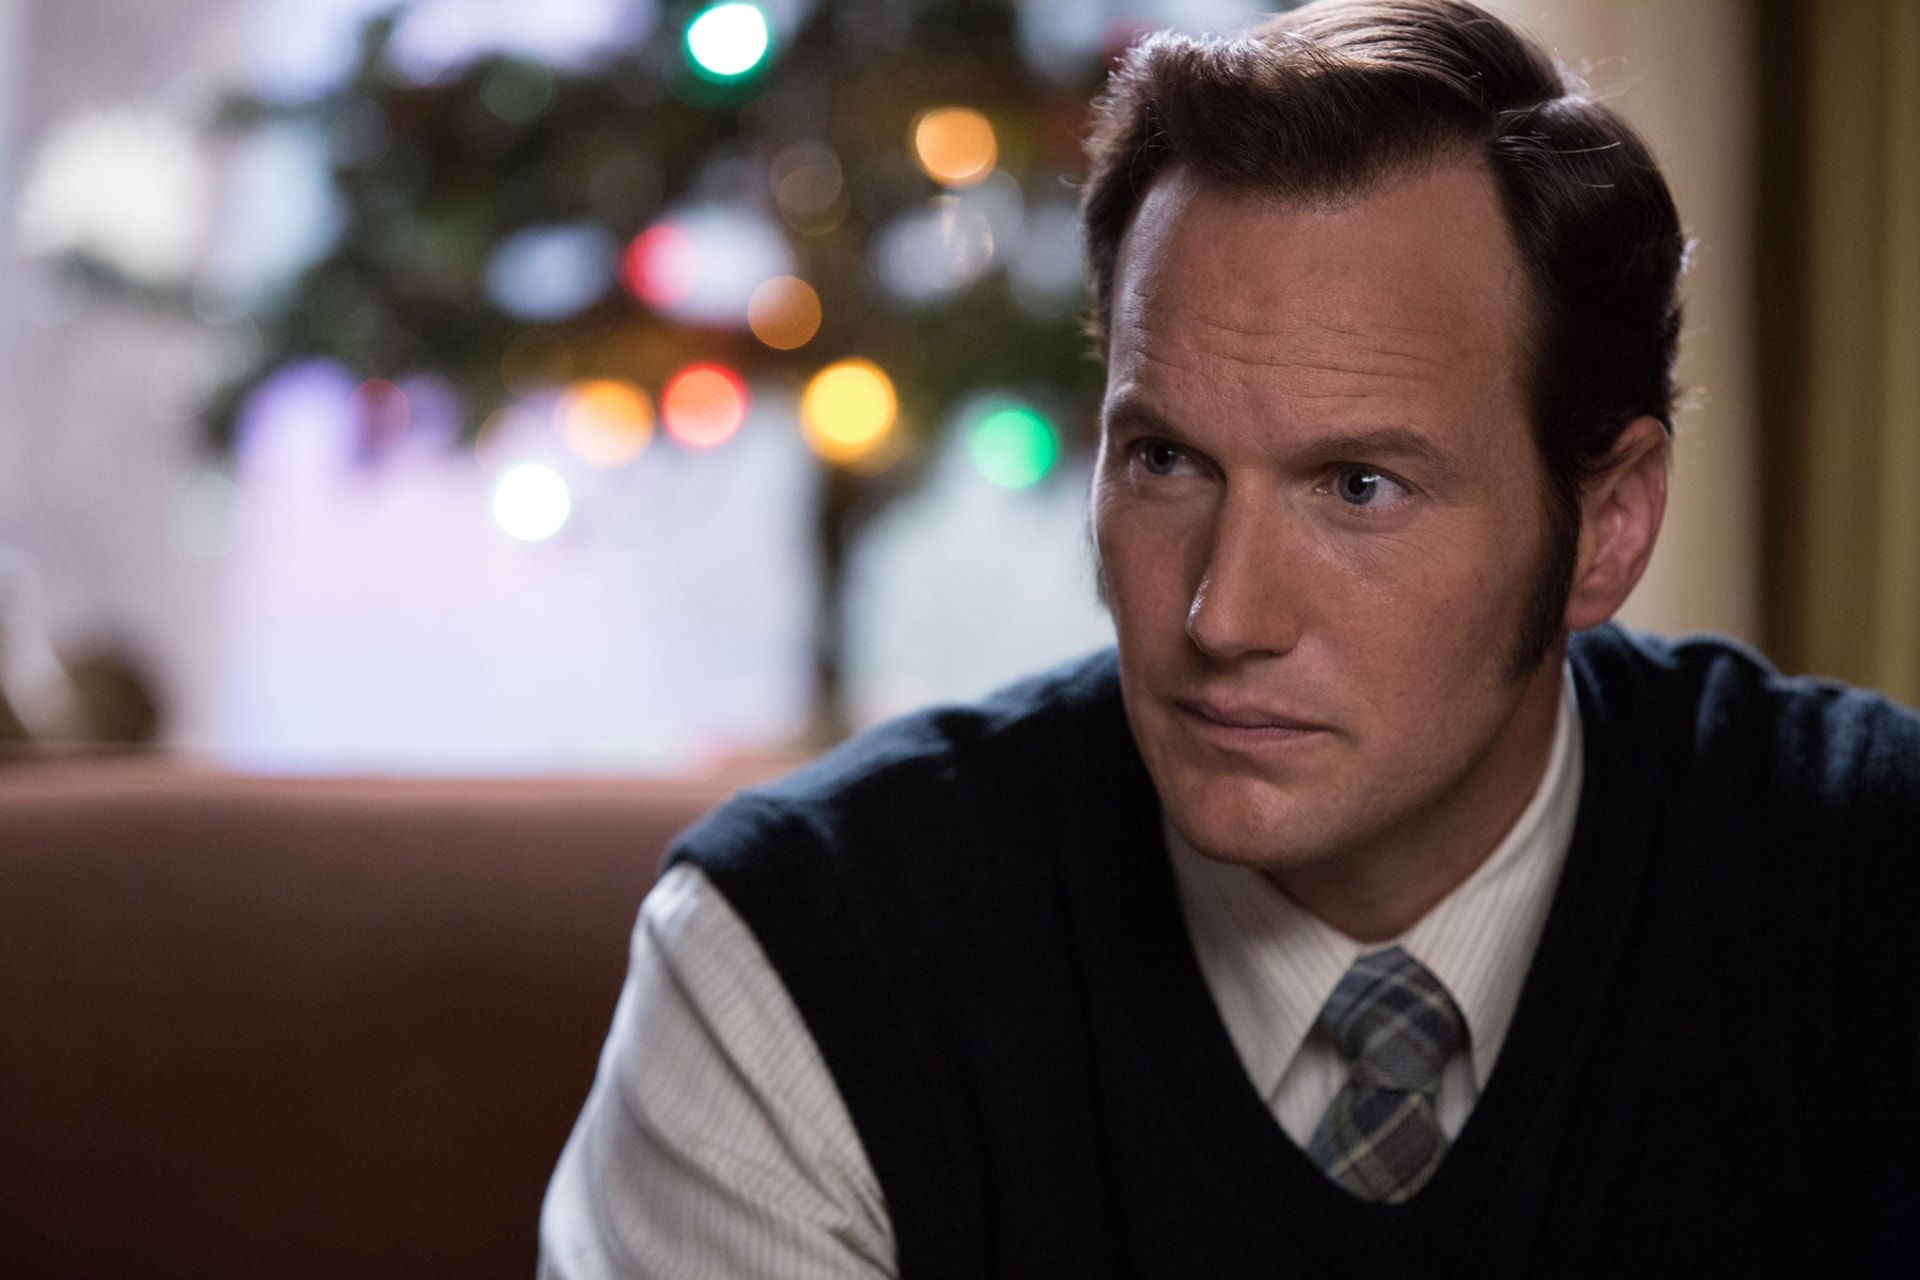 PATRICK WILSON as Ed Warren staring intently with Christmas lights in background